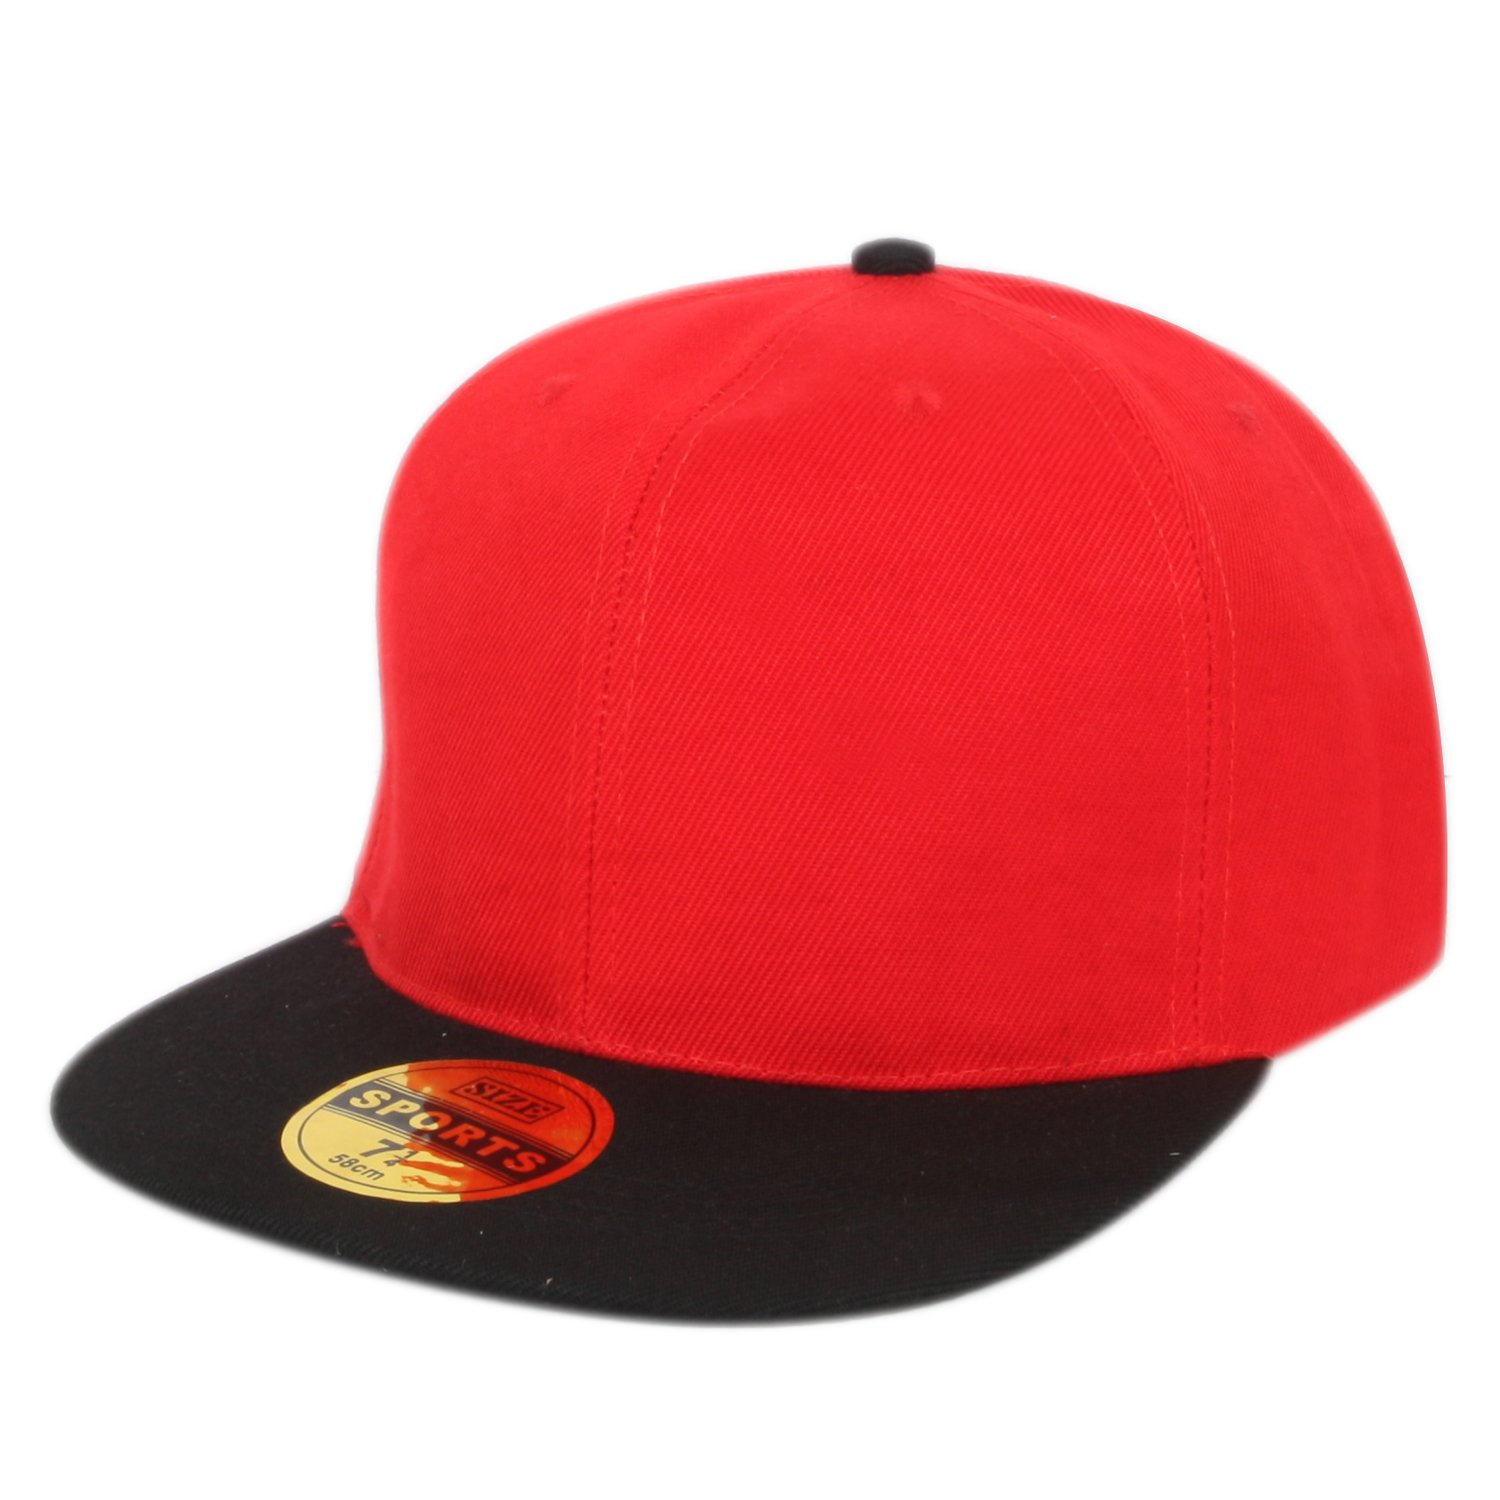 2e4940c551e ILU Unisex Cotton Snapback Hiphop Cap Red and Black Freesize  Amazon.in   Clothing   Accessories